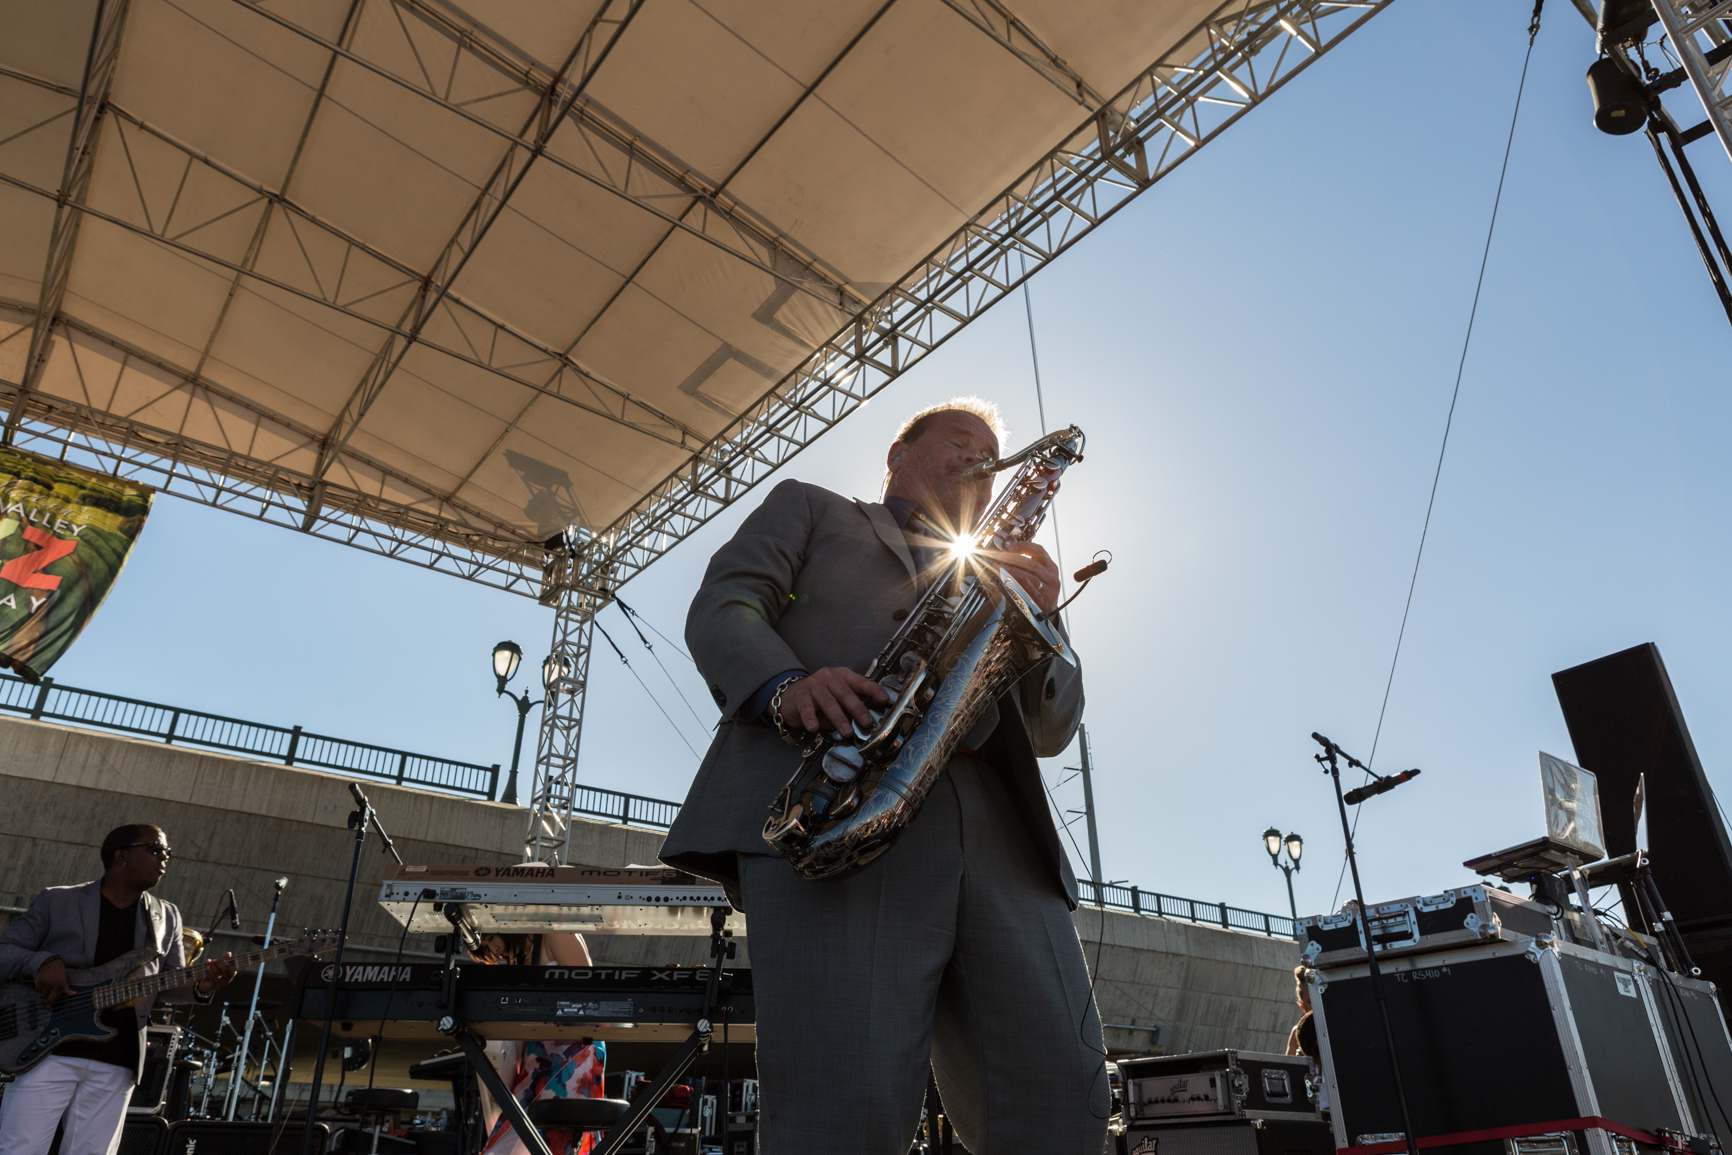 IMG_6444-06-10-17-  MATSUI,WHITE,GROOVE-OXBOW -chyna photography.jpg